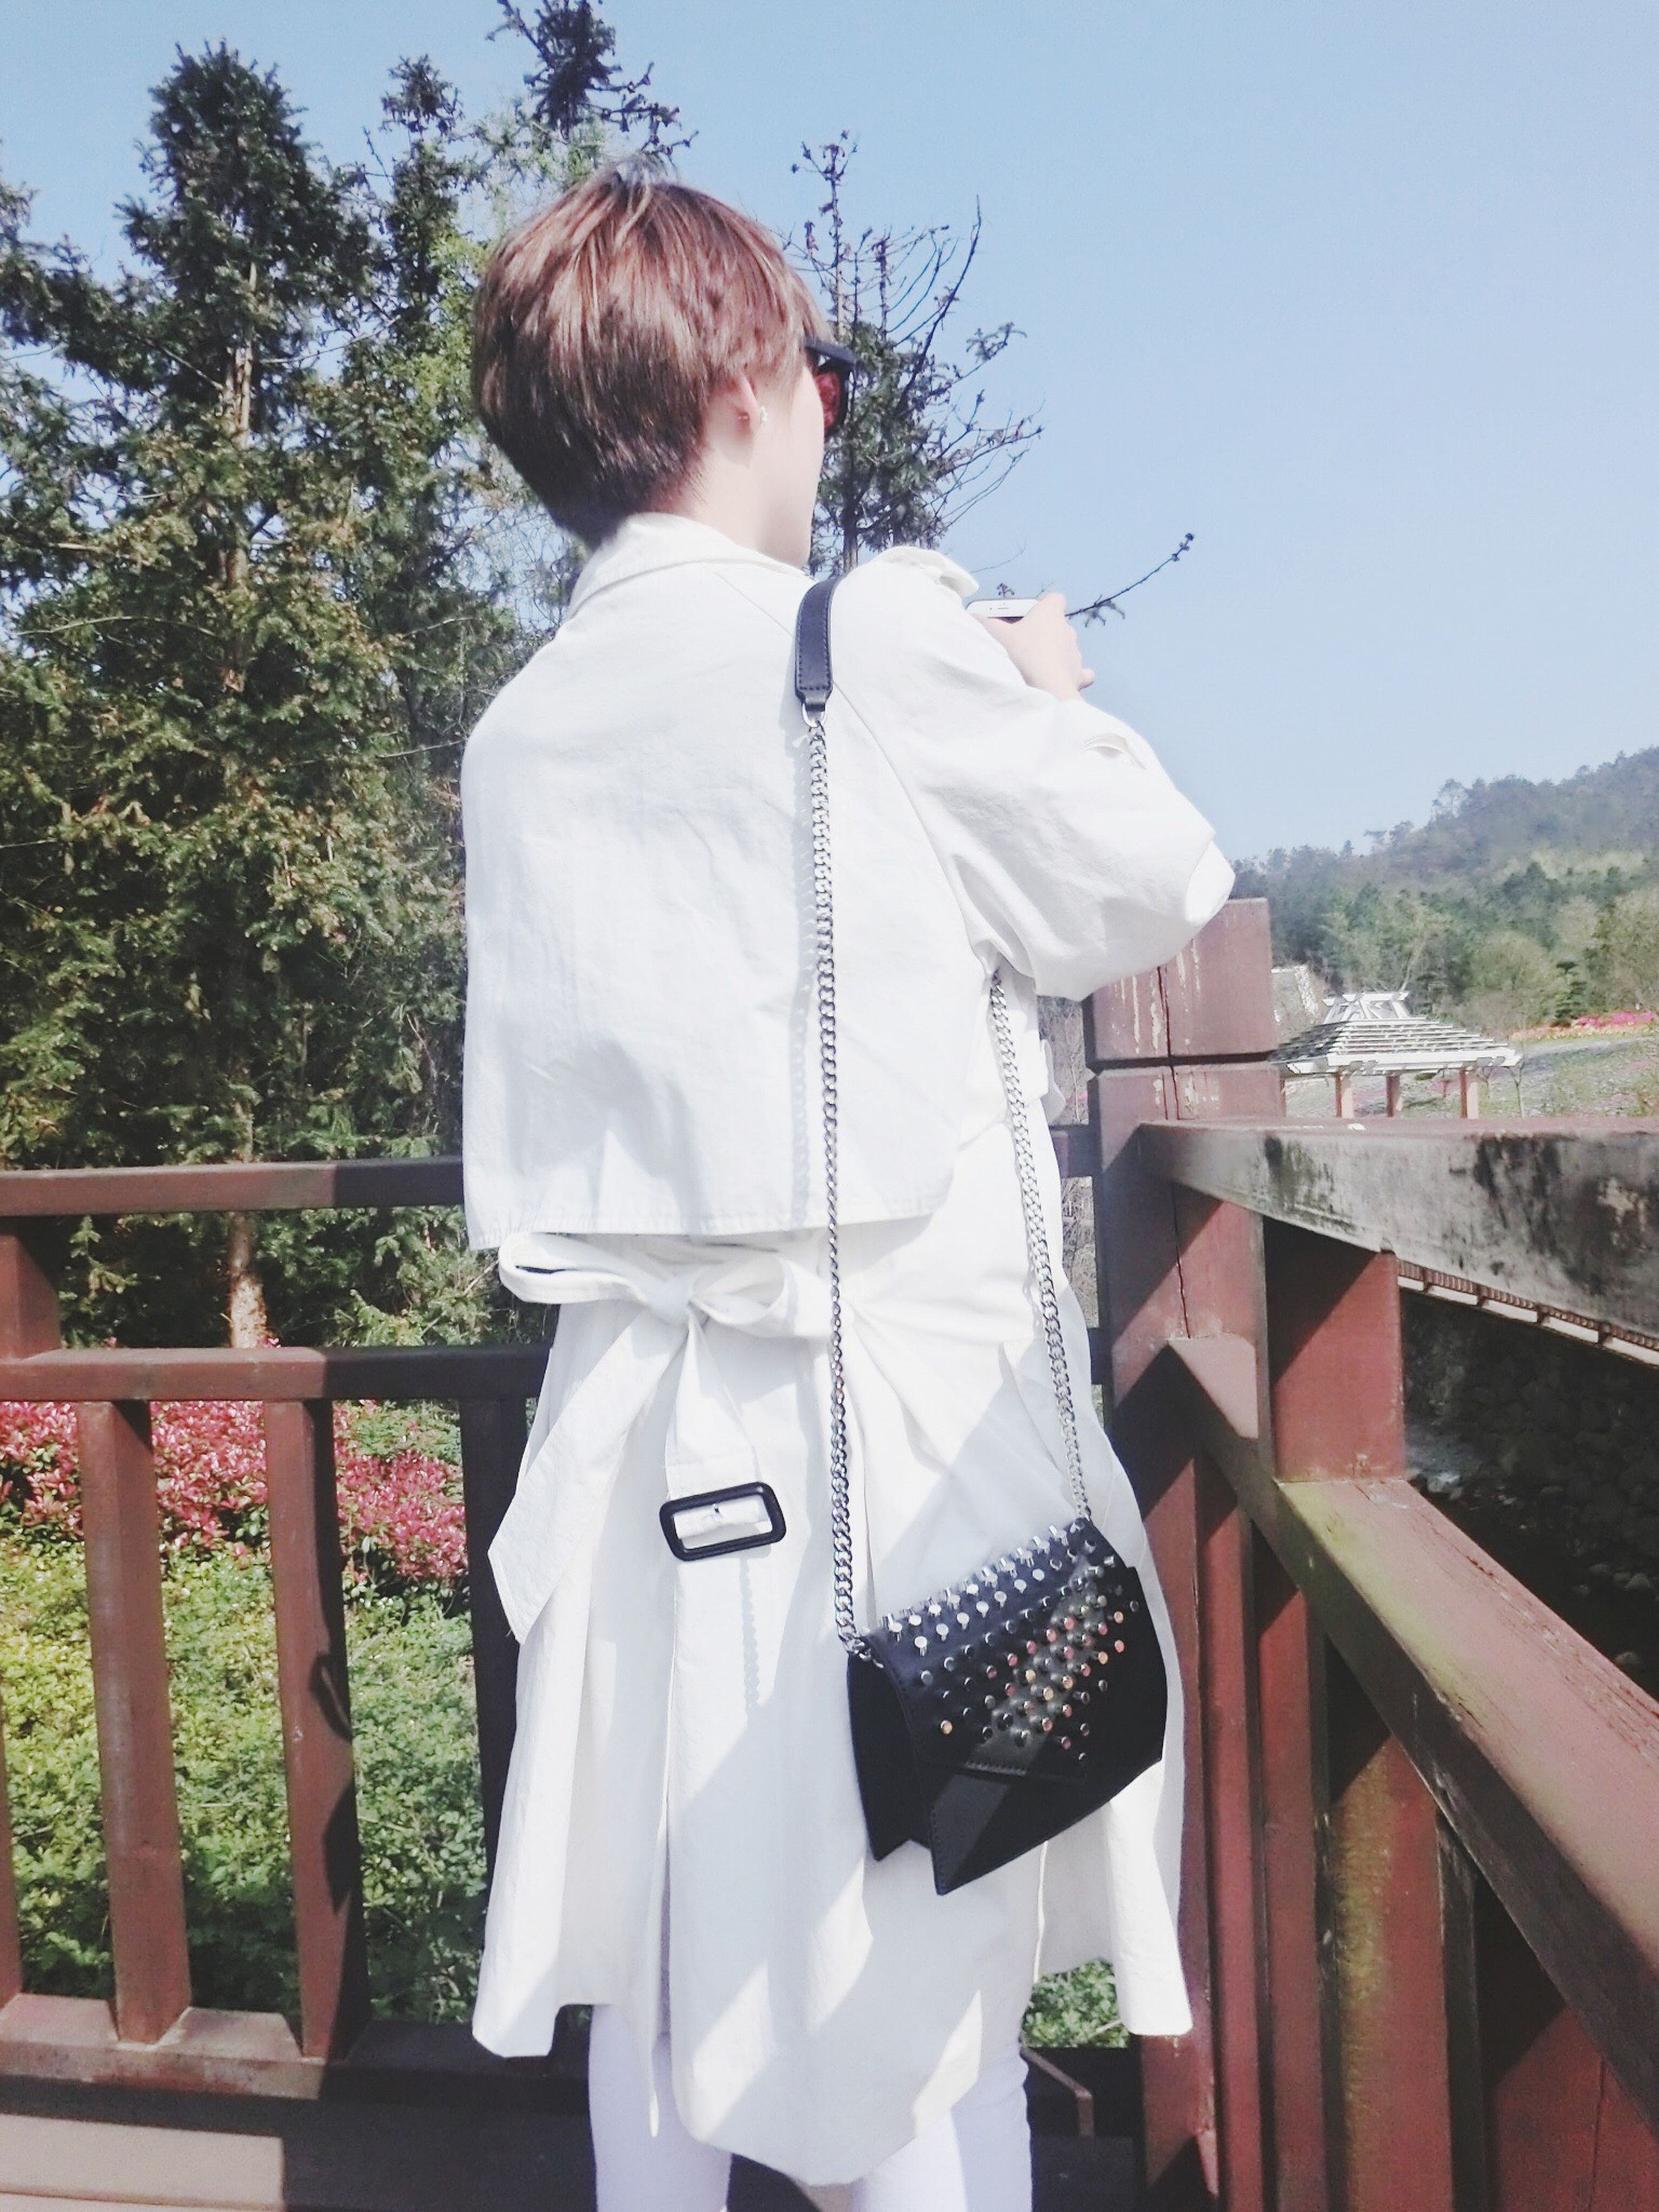 casual clothing, lifestyles, tree, leisure activity, person, standing, three quarter length, young adult, railing, full length, front view, waist up, sitting, holding, day, focus on foreground, outdoors, sunlight